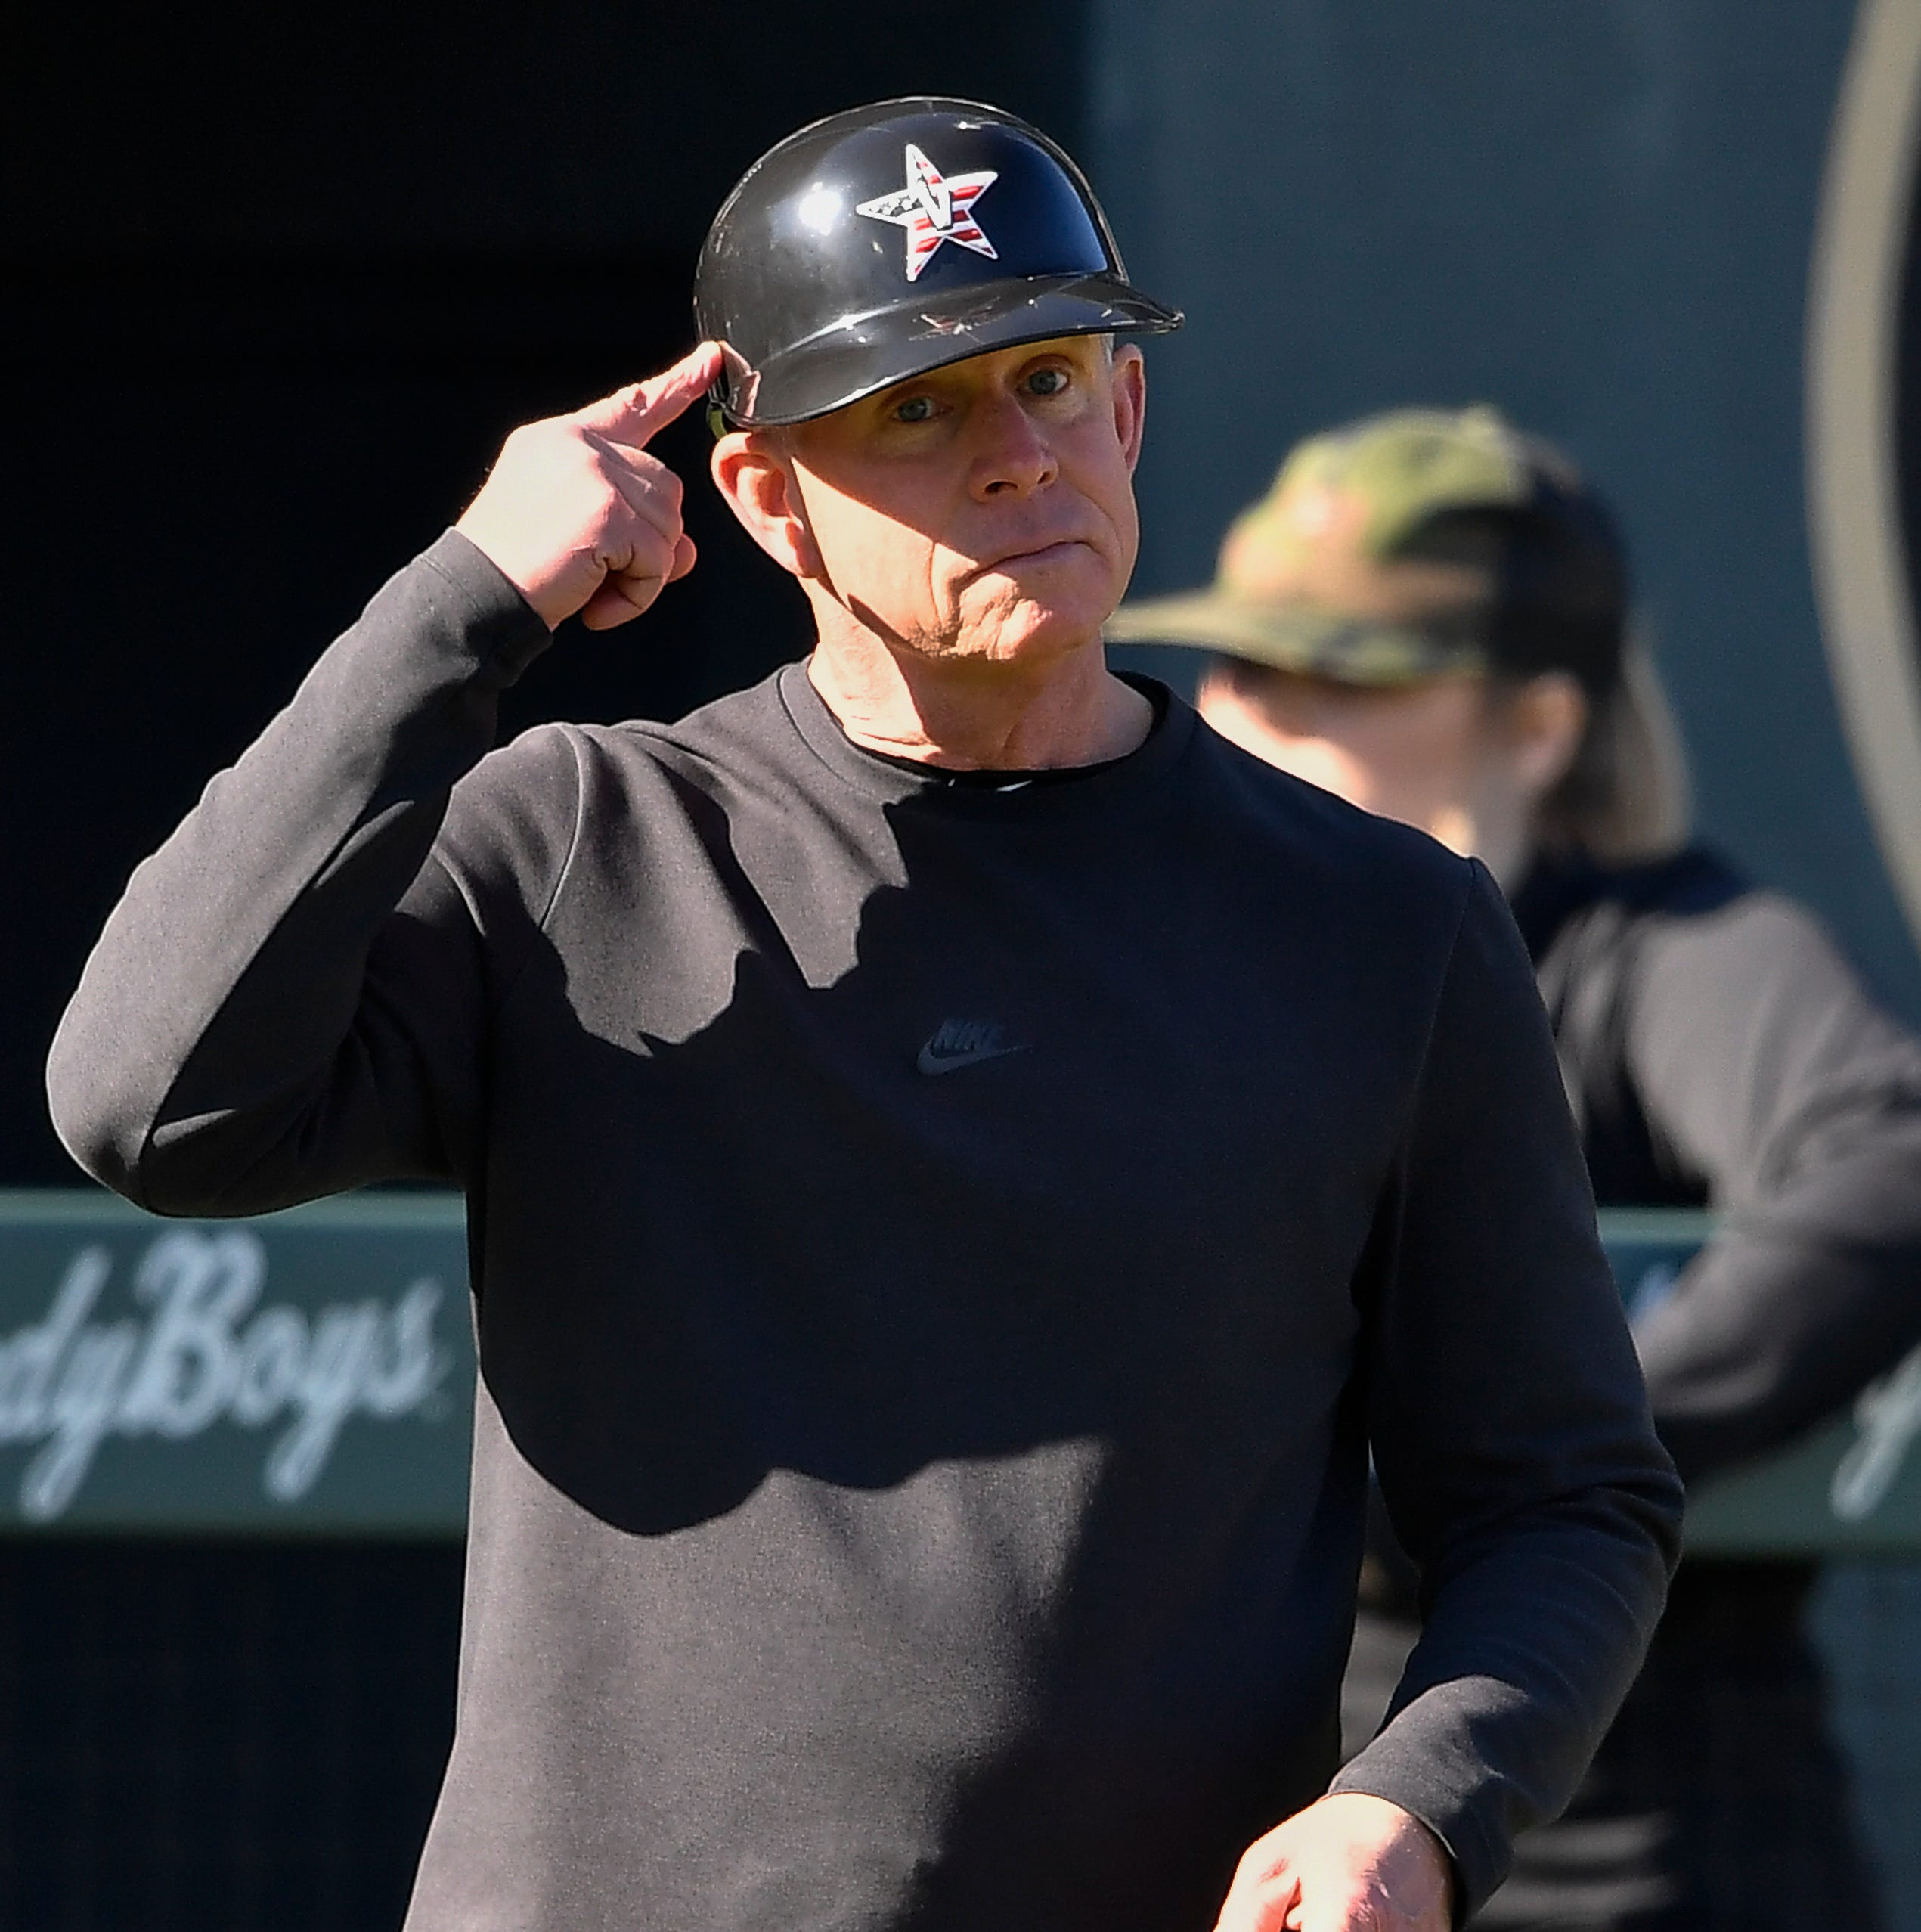 Vanderbilt baseball coach Tim Corbin is grateful for his team, angry for his sport